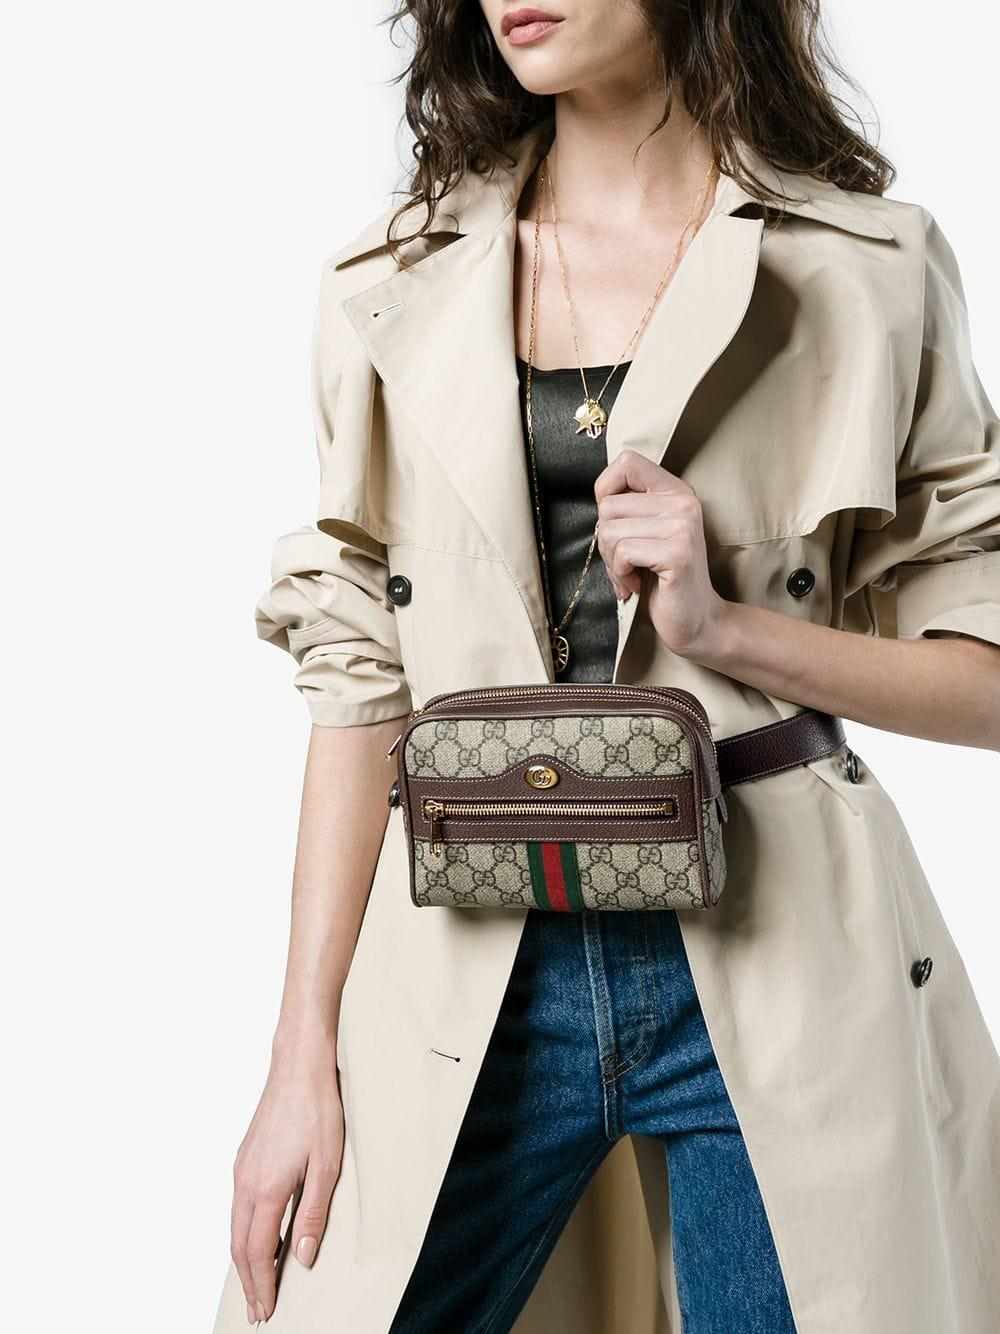 937b28afa257 Gucci Brown Ophidia GG Supreme Small Belt Bag in Brown - Save 15% - Lyst